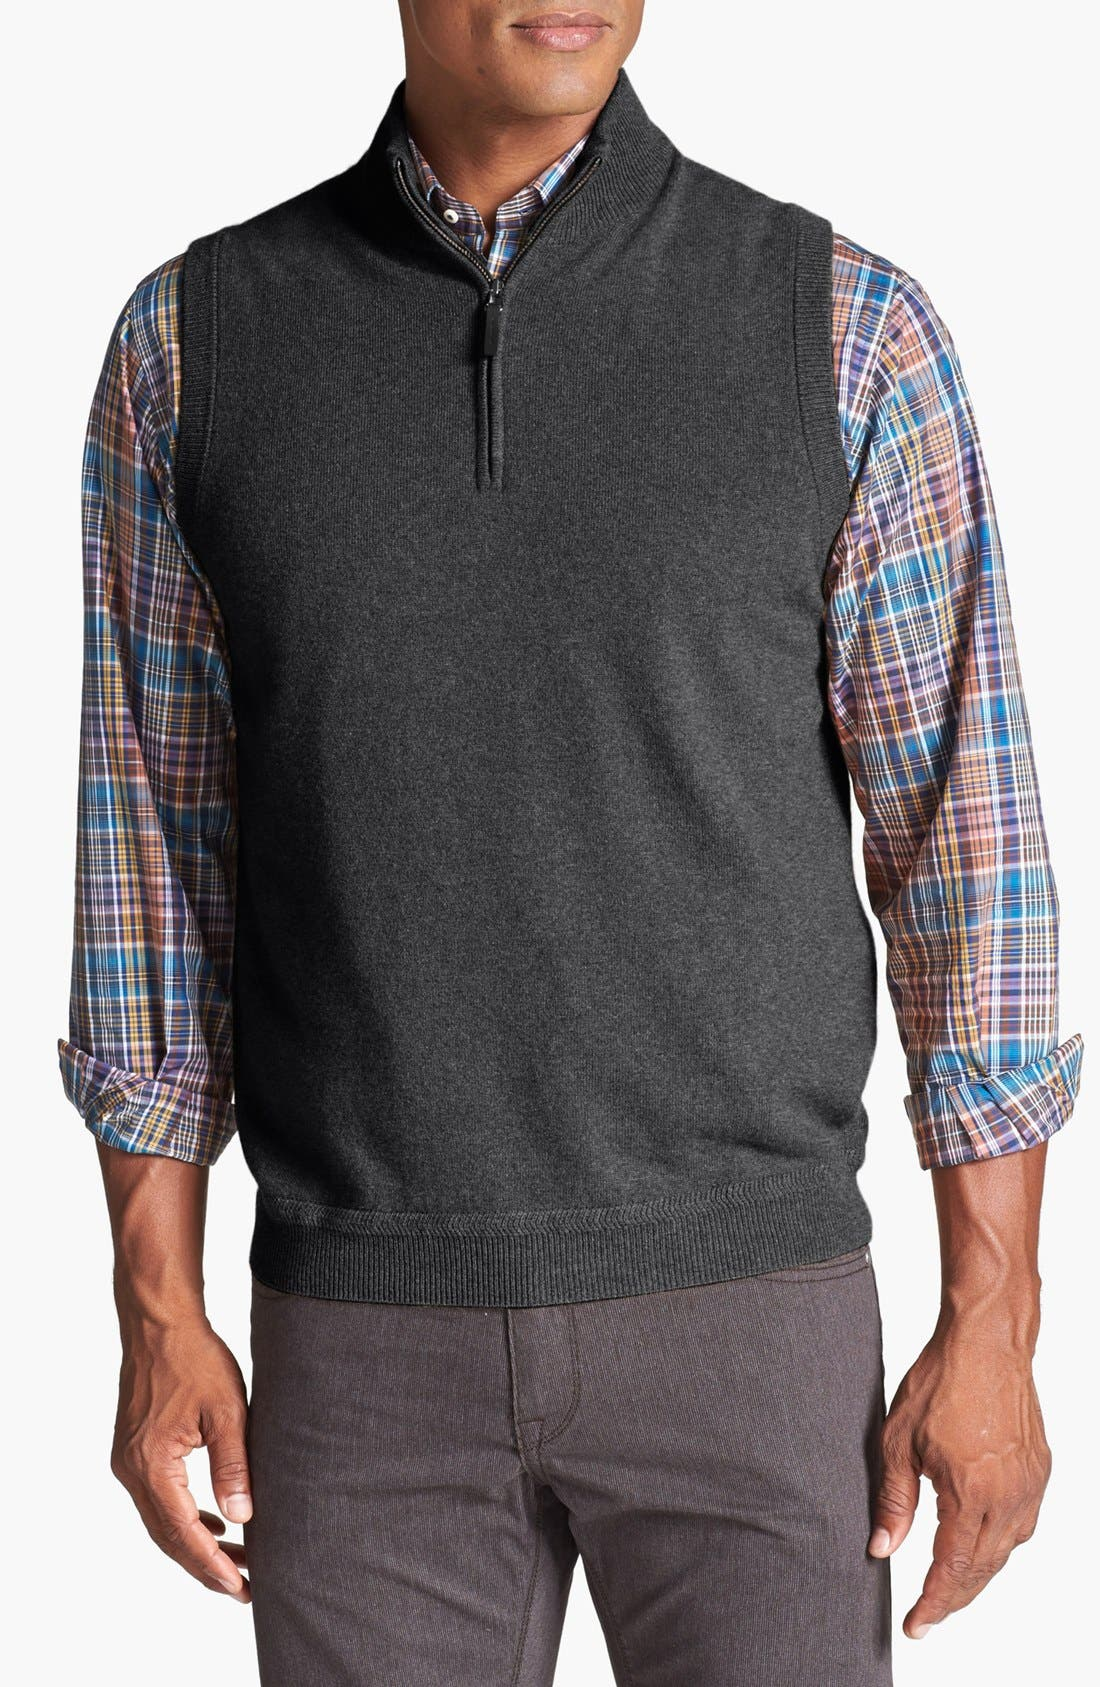 Alternate Image 1 Selected - John W. Nordstrom® Half Zip Cashmere Vest